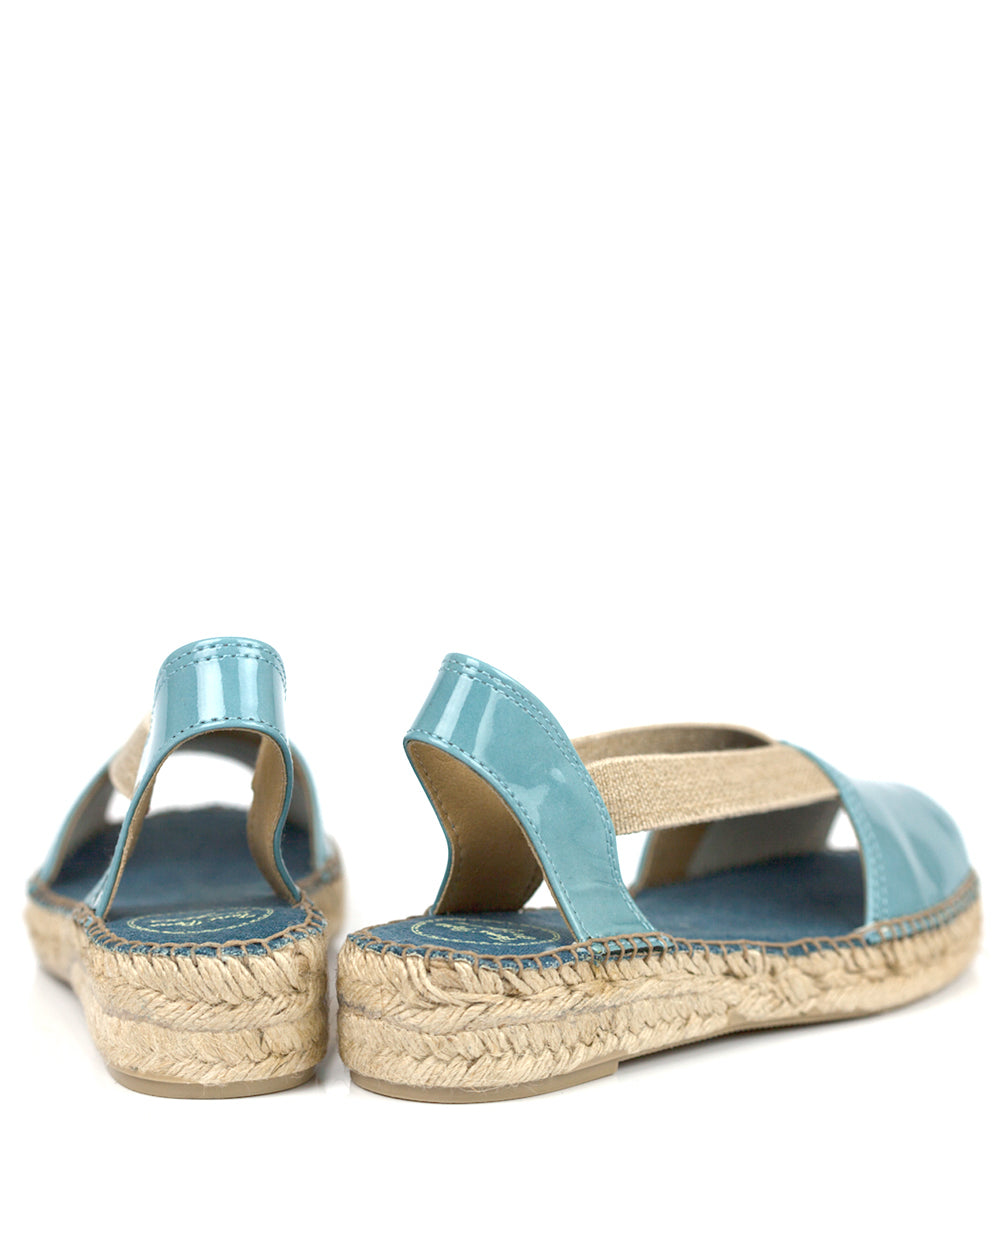 Evon XA Sky Blue Patent Leather Espadrilles - The Espadrille Hut